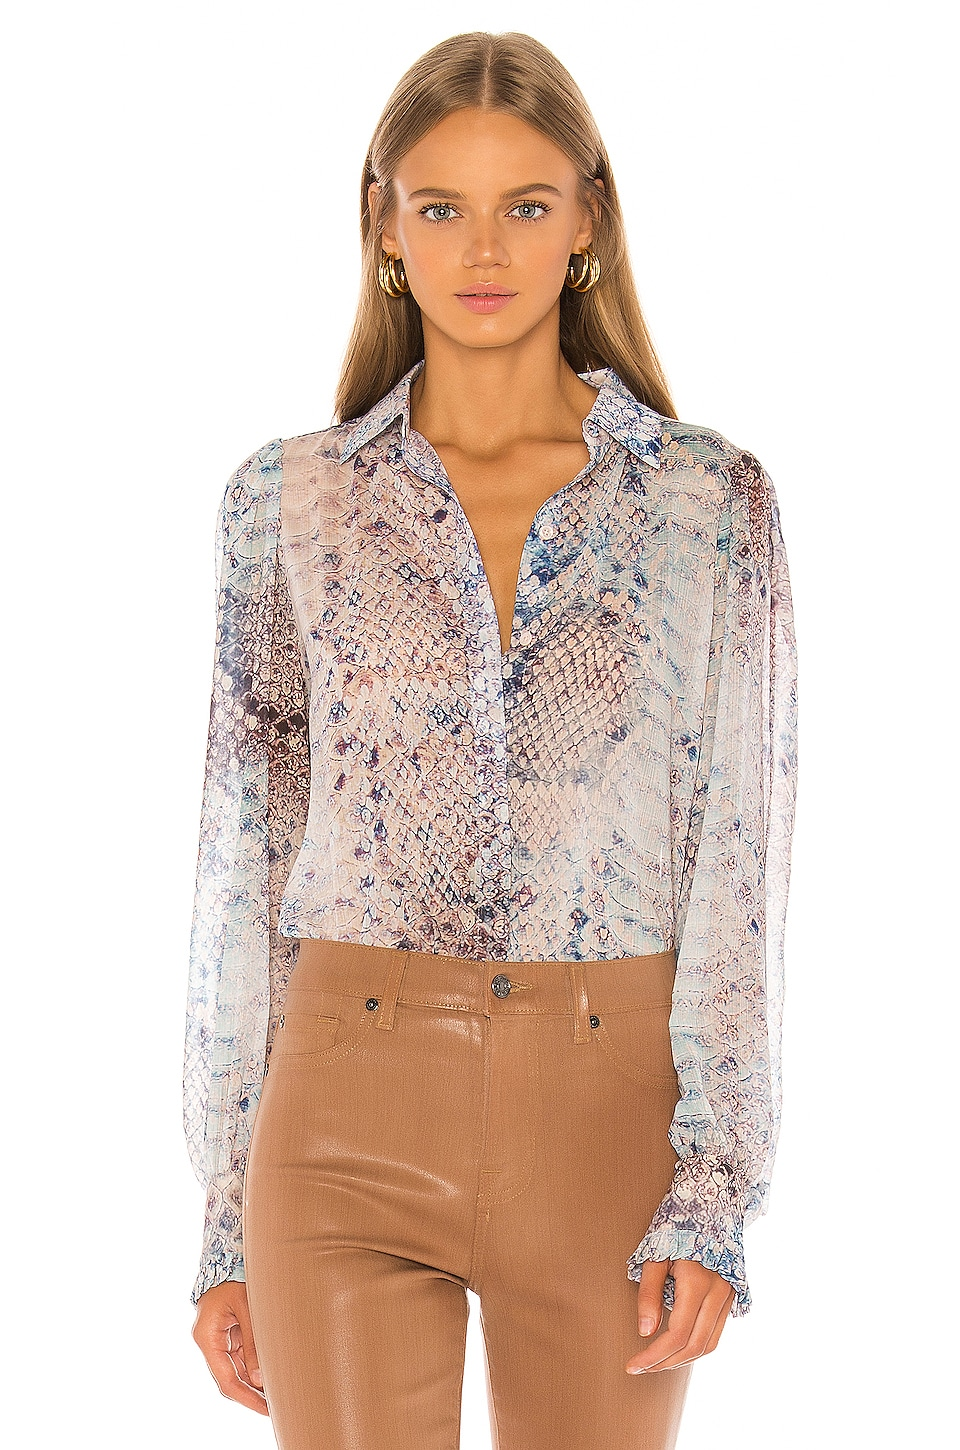 7 For All Mankind Ruffle Cuff Button Up Top in Pink Snake